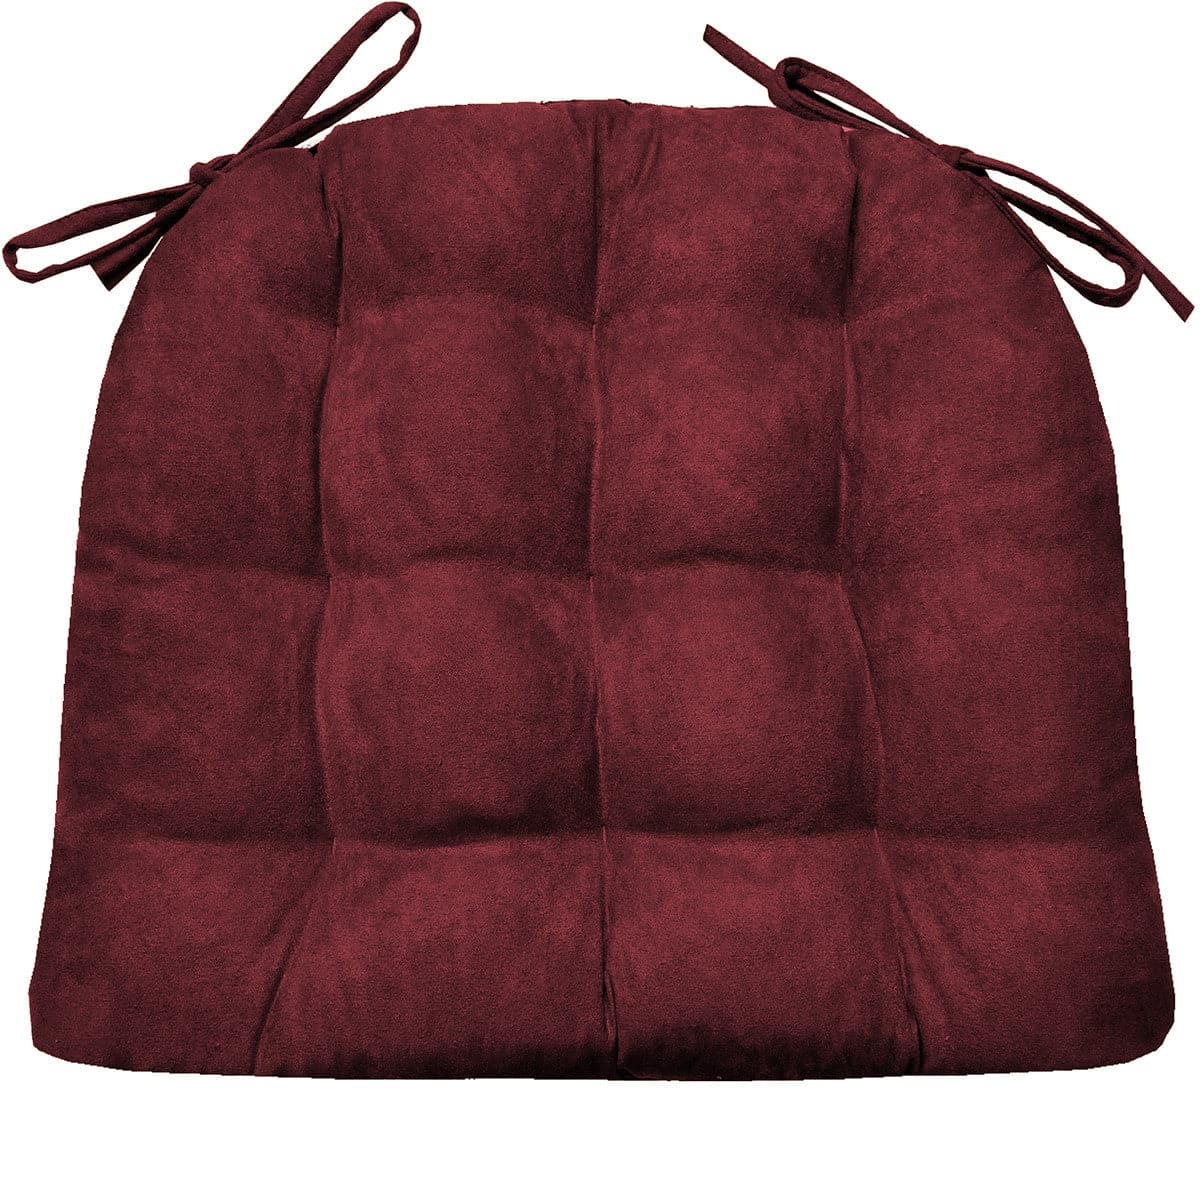 Micro Suede Wine Red Soild Dining Chair Cushion | Barnett Home Decor ...